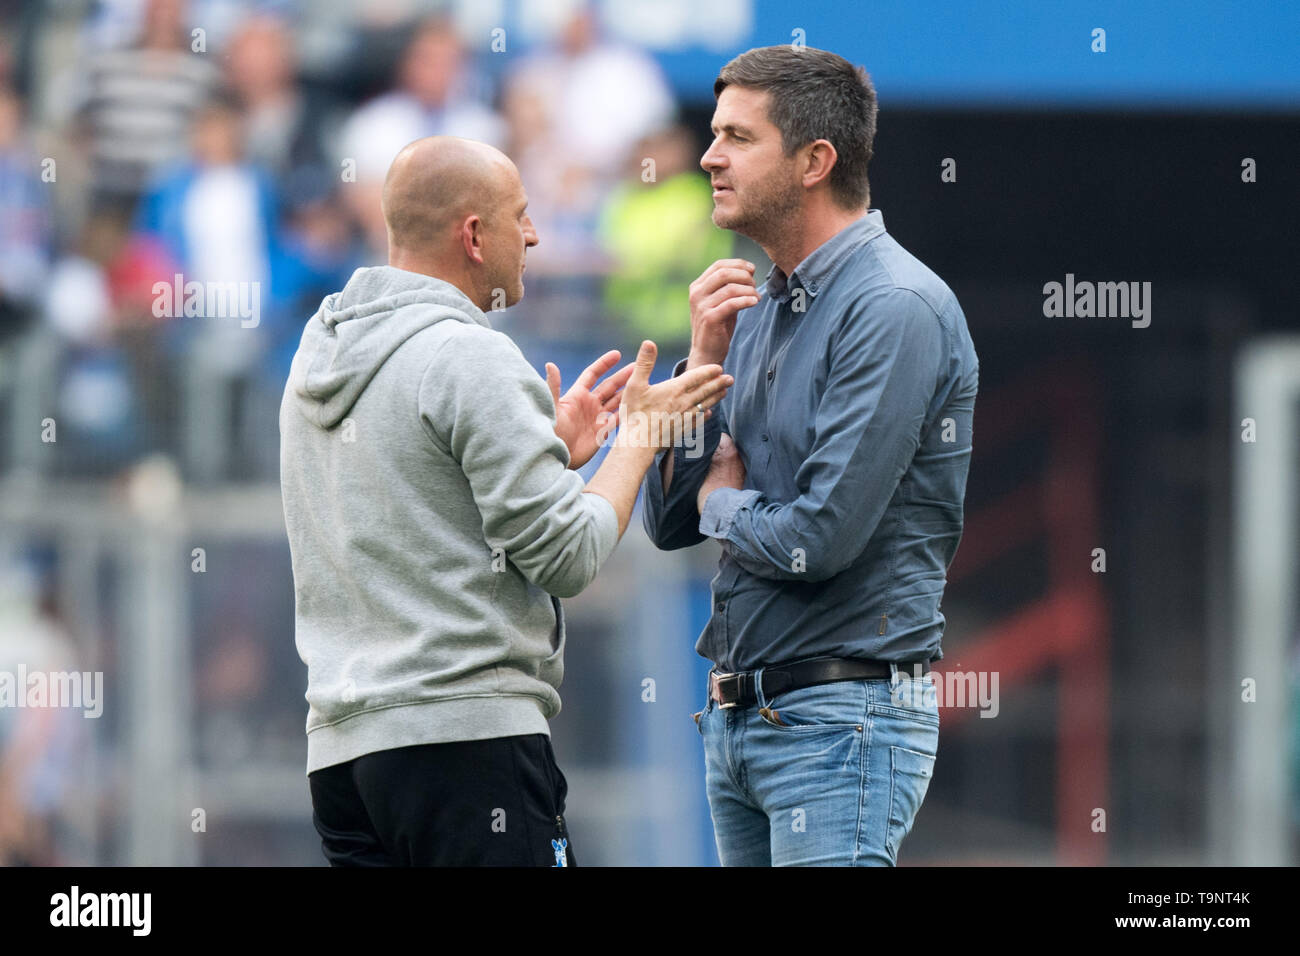 Hamburg, Deutschland. 19th May, 2019. goalsten LIEBERKNECHT (l., coach, DU) talks after the game with Ralf BECKER (sports director, HH), talking, conversation, conversation, half figure, half figure, football 2nd Bundesliga, 34th matchday, Hamburg Hamburg Hamburg (HH) - MSV Duisburg (DU) 3: 0, on 19.05.2019 in Hamburg/Germany. ¬ | usage worldwide Credit: dpa/Alamy Live News - Stock Image